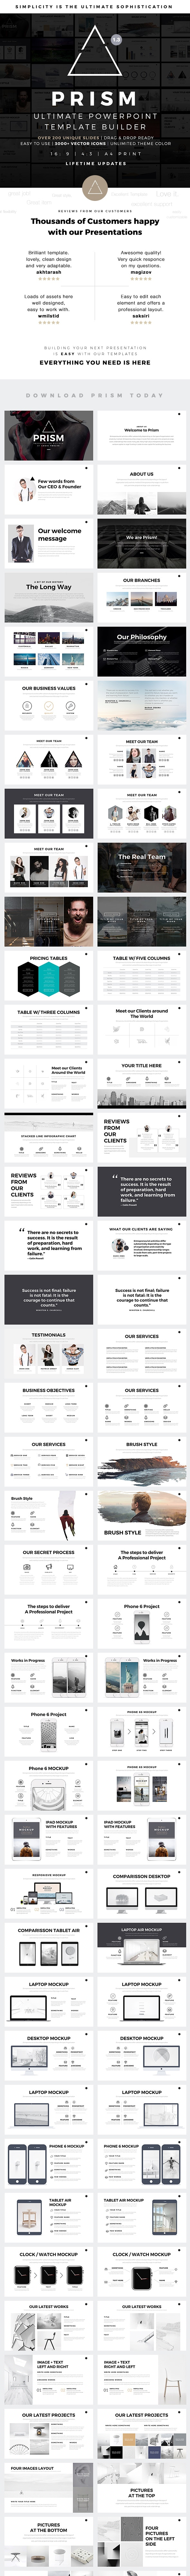 Prism Minimal PowerPoint Template Builder - Business PowerPoint Templates